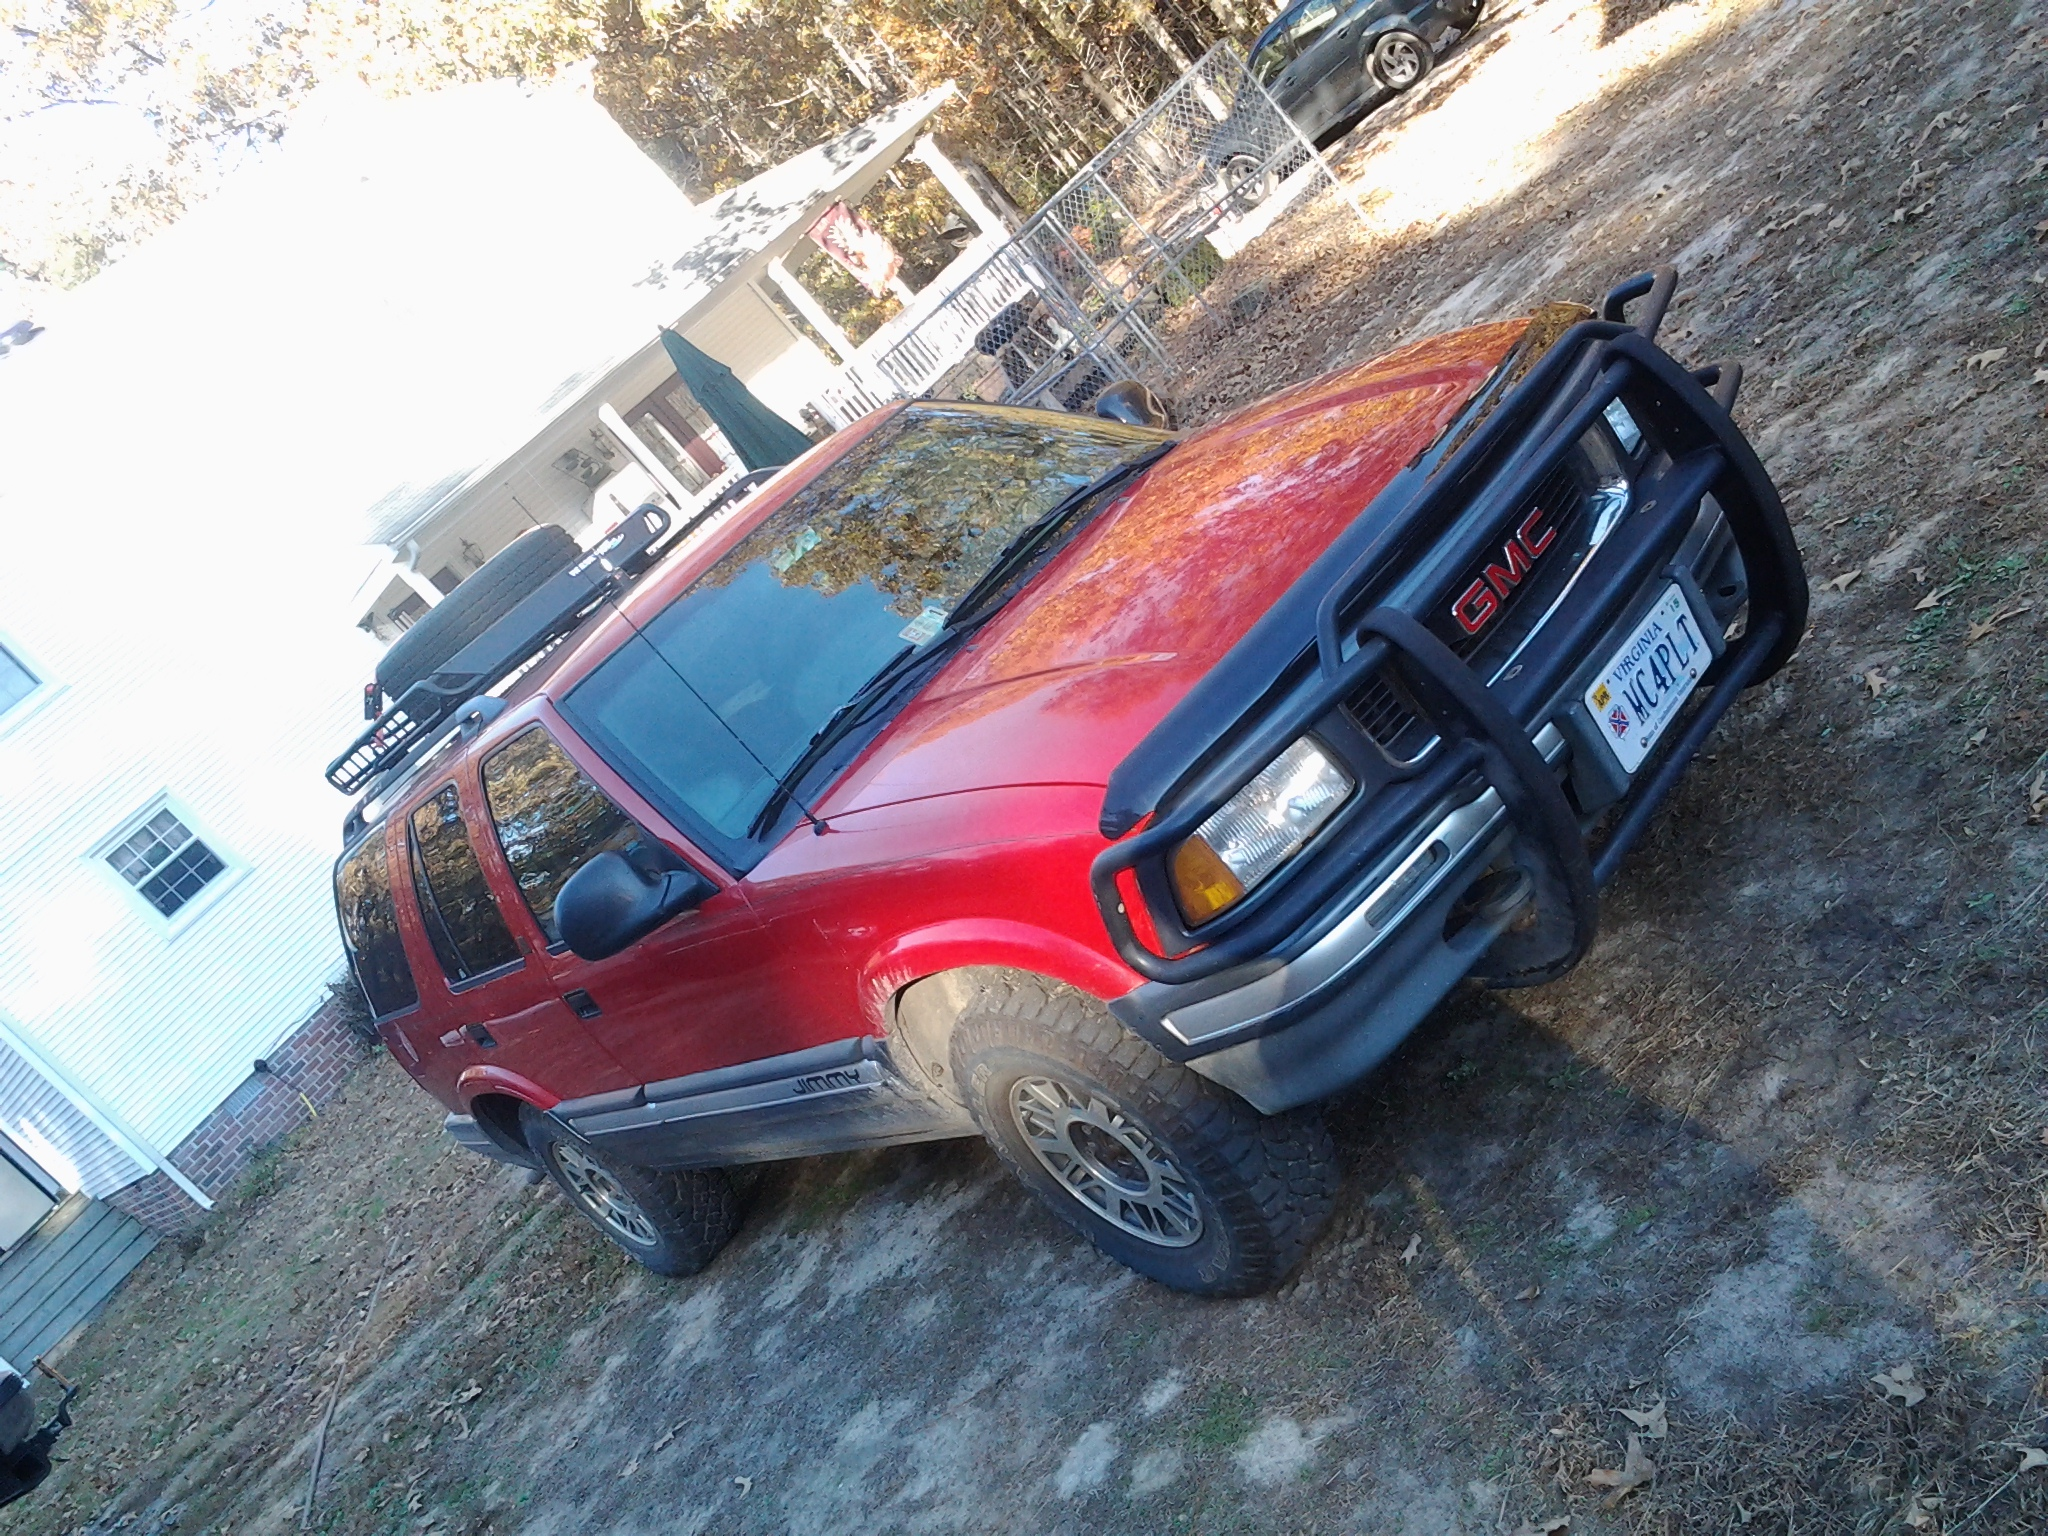 Another ndrisk 1995 gmc jimmy post - 19087820